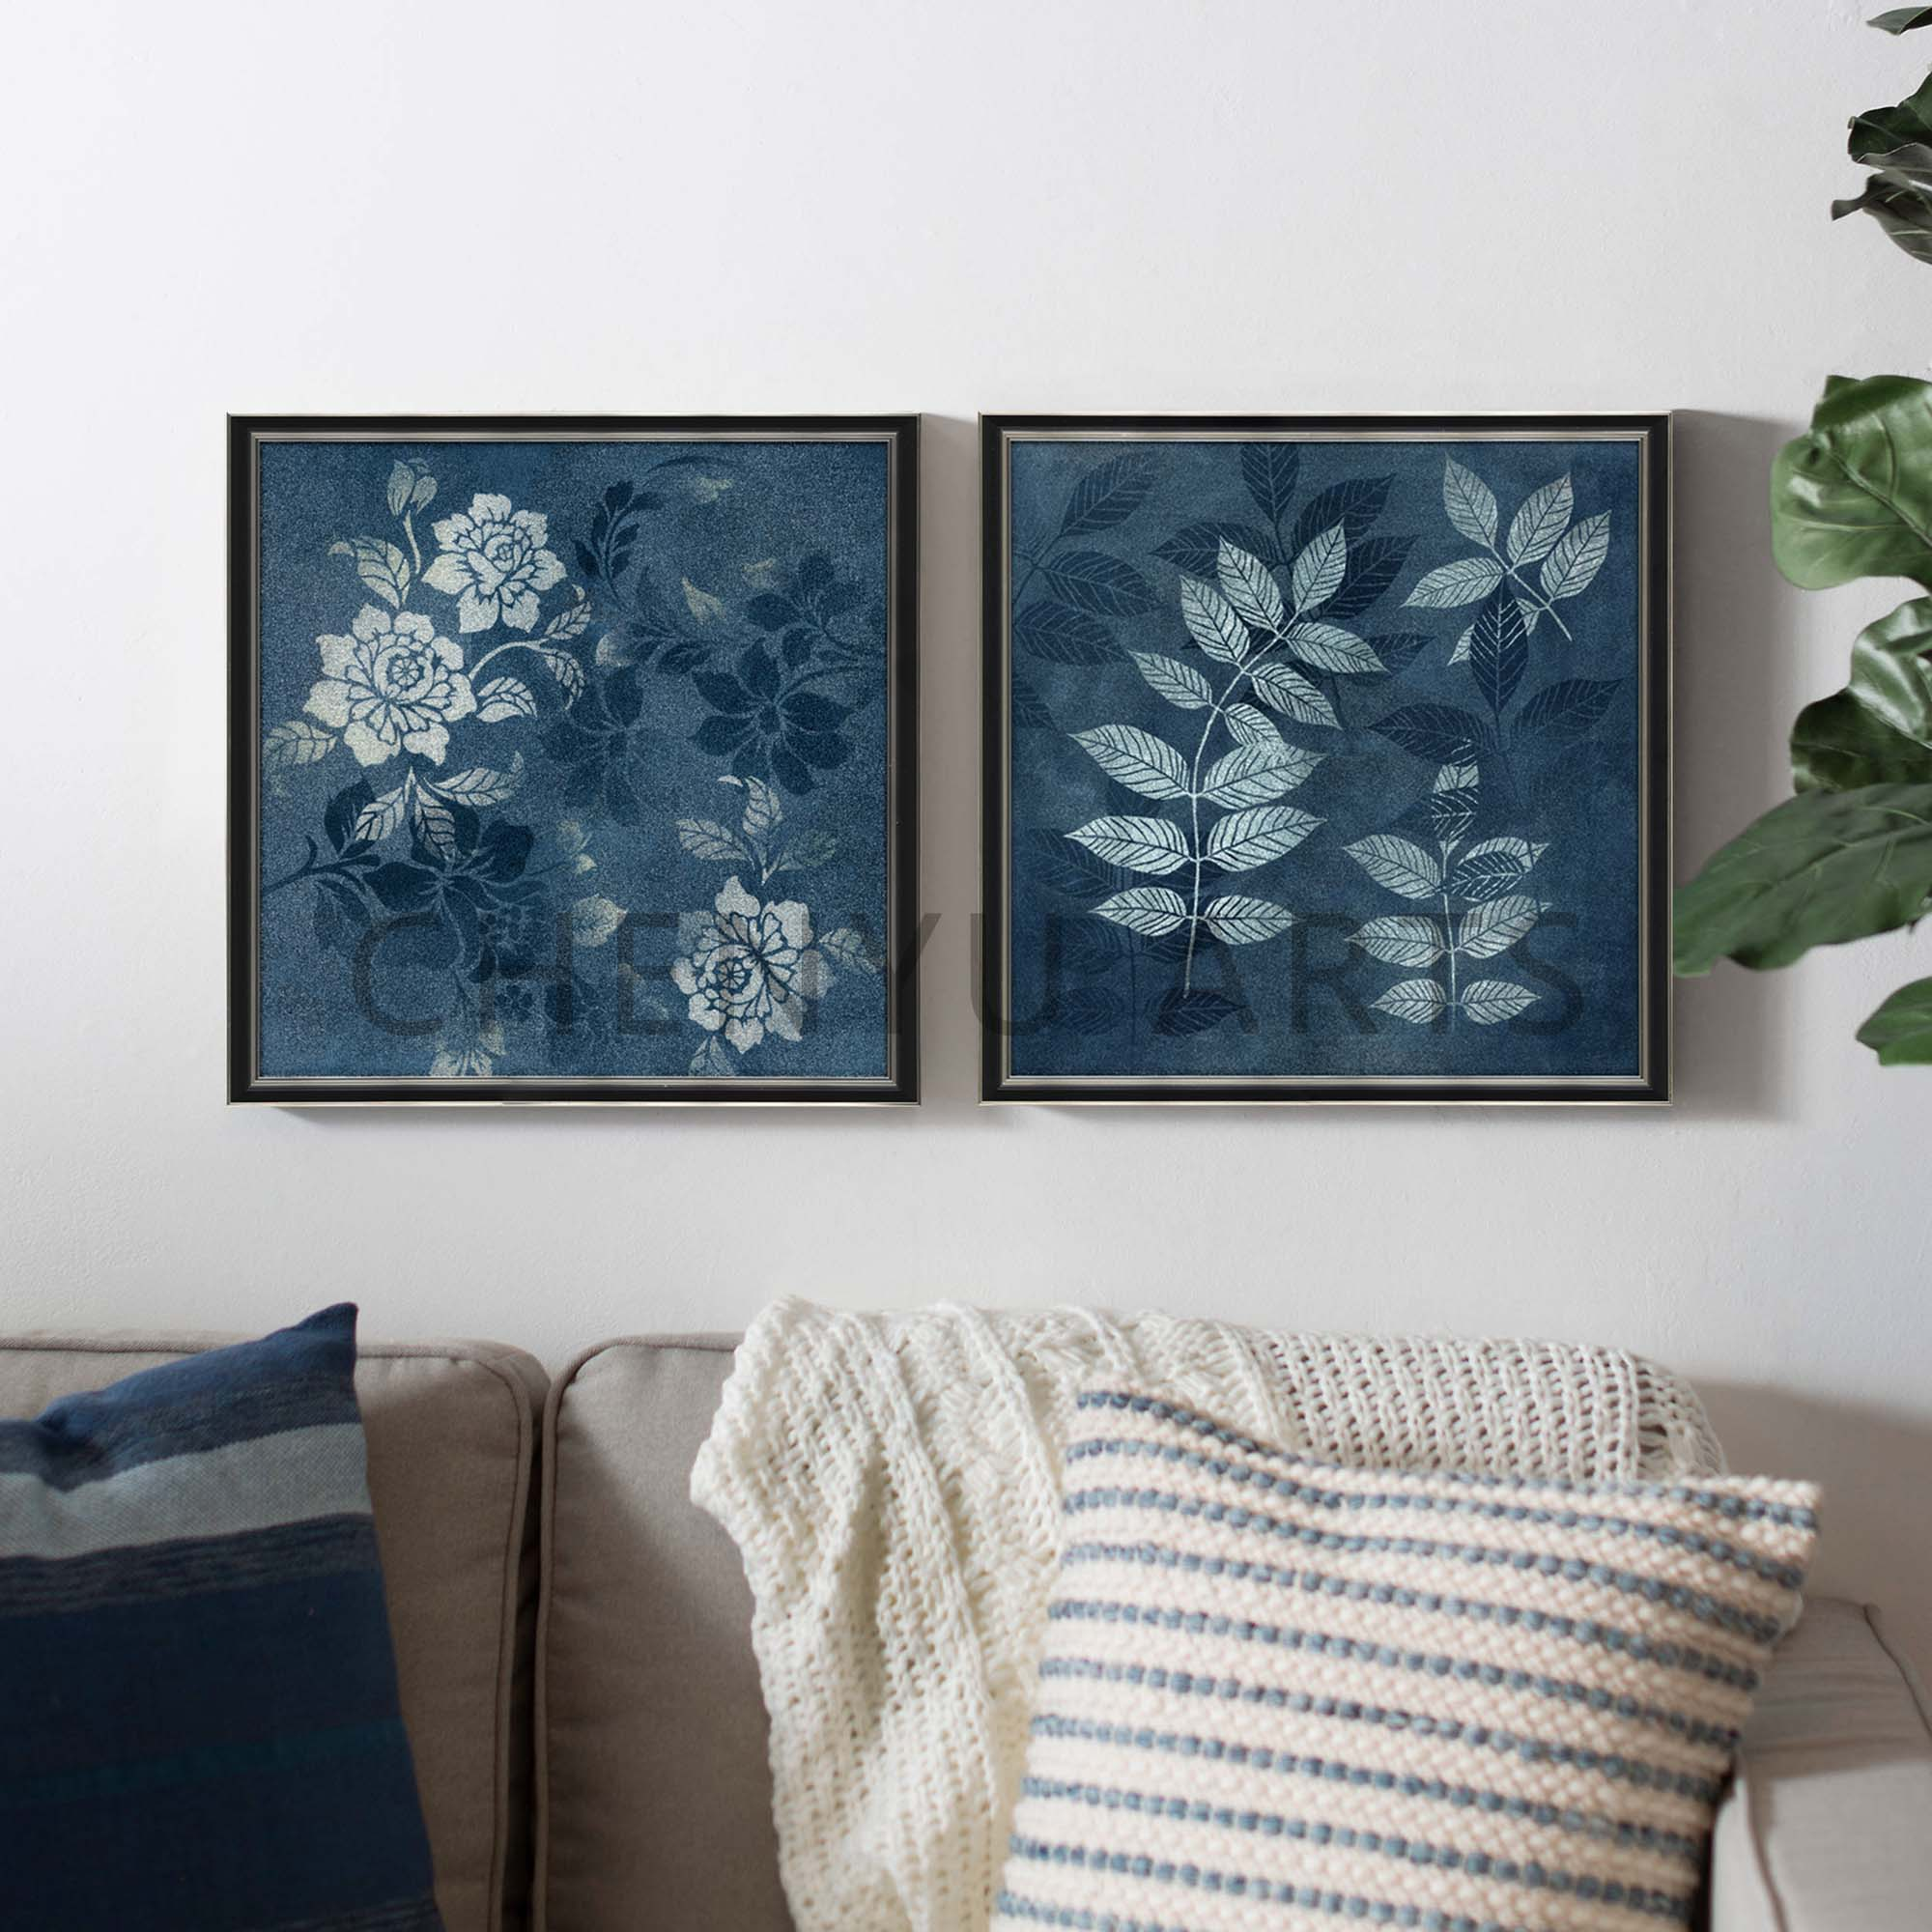 LEAF AND FLORAL FRAMED ART